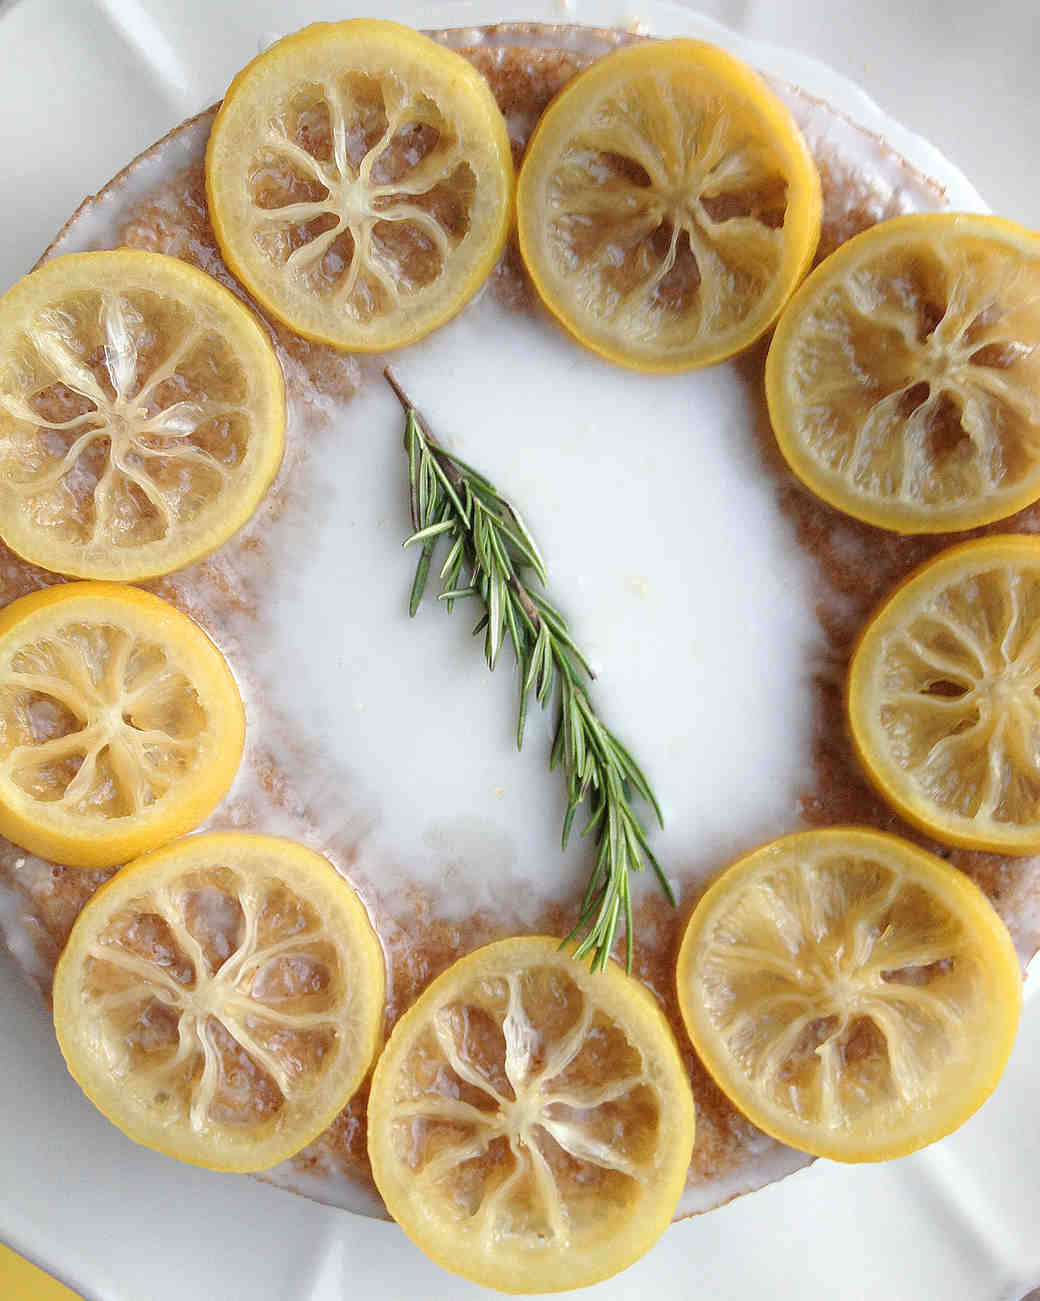 lemon-rosemary-olive-oil-cake-with-candied-lemons-1015.jpg